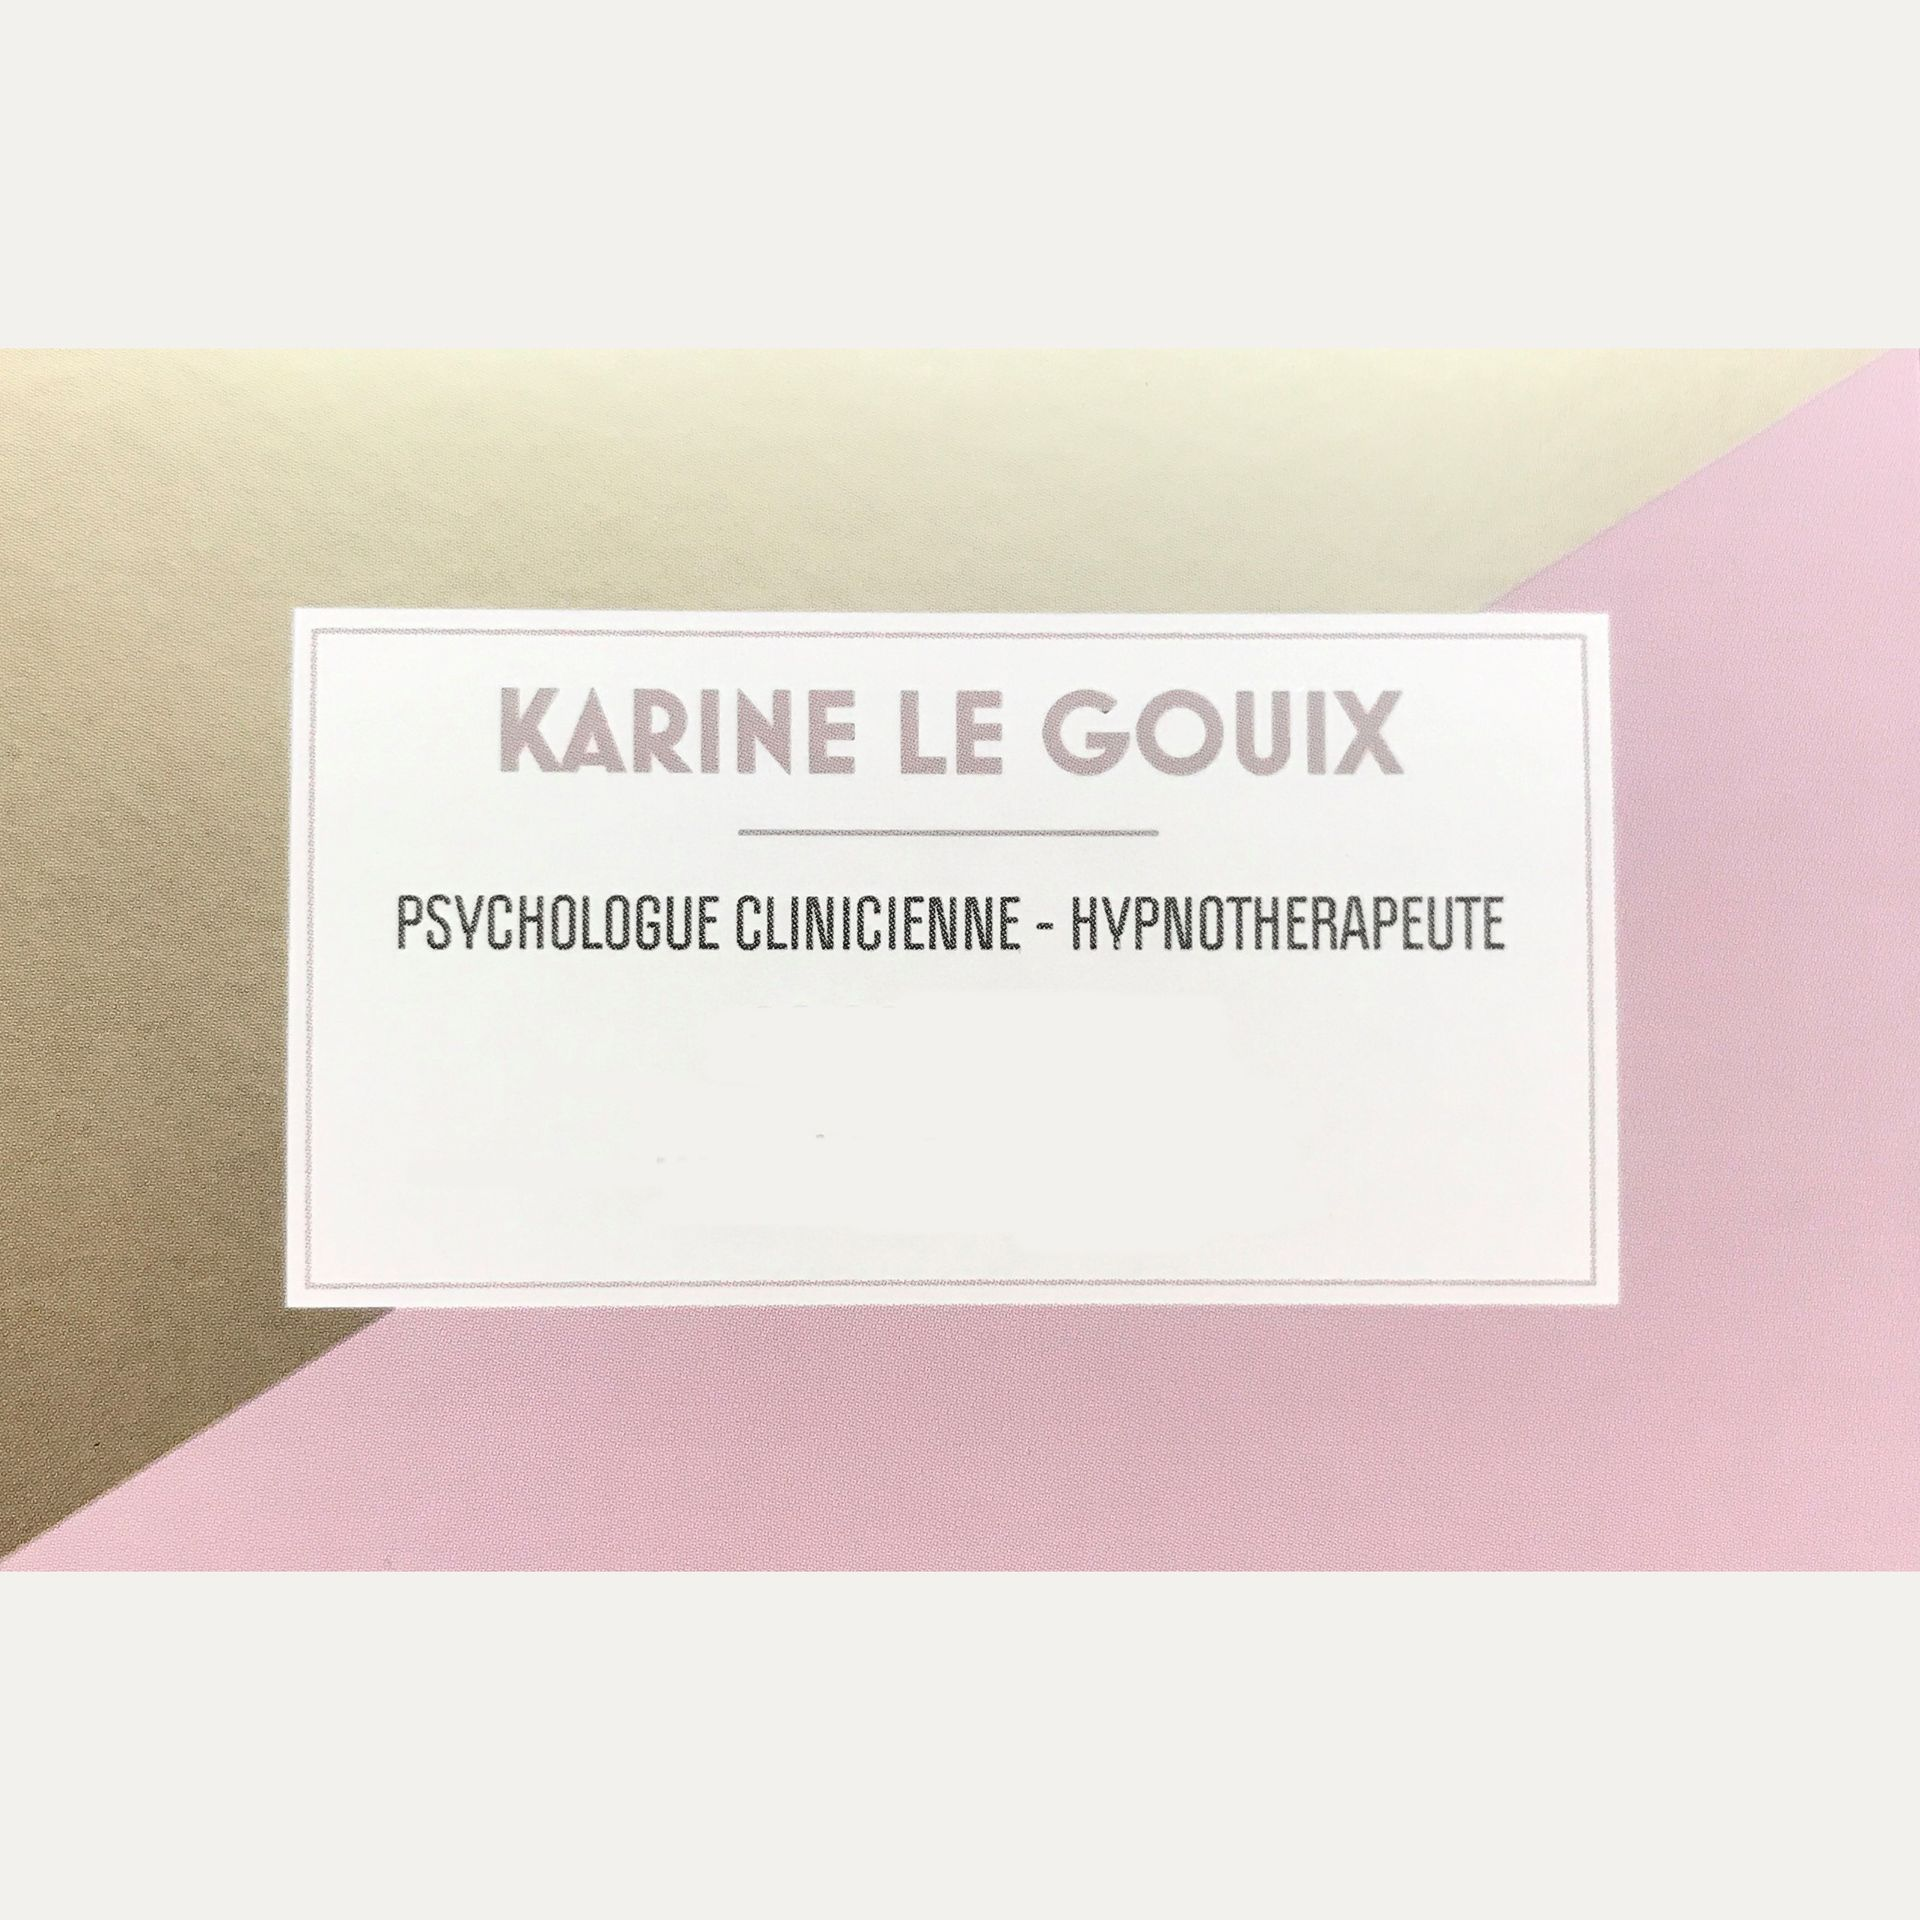 Karine Le Gouix psychologue